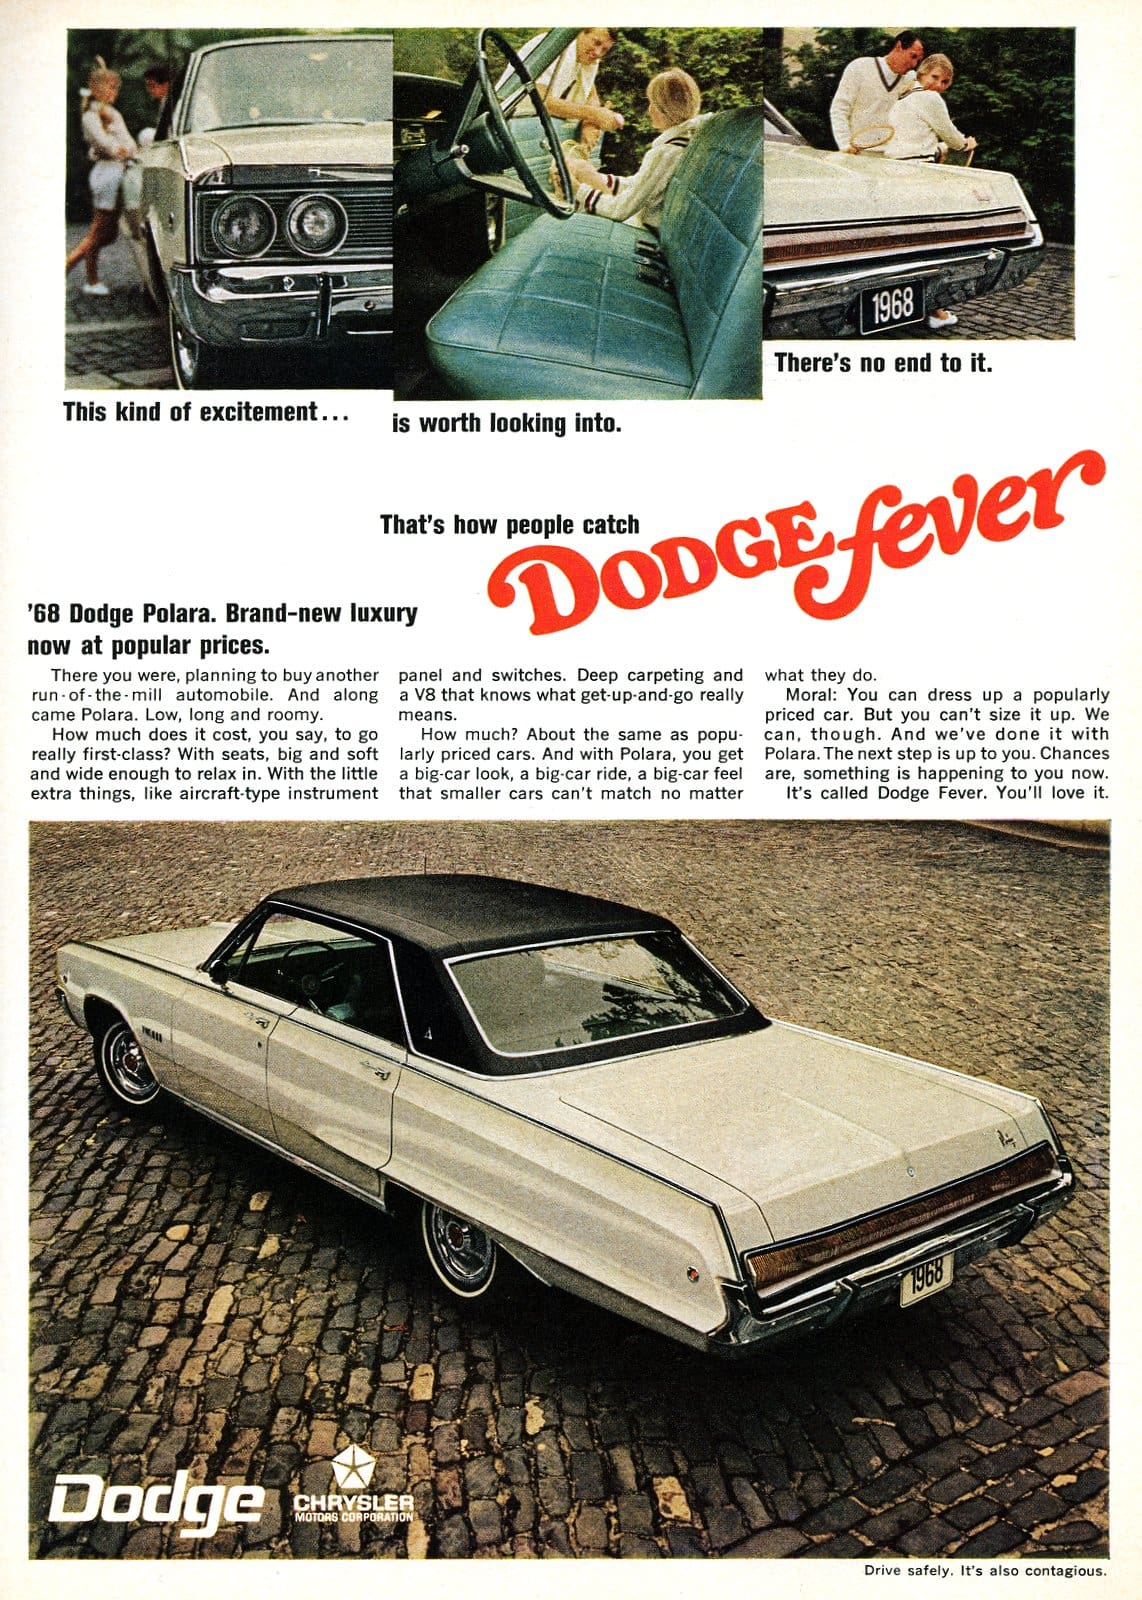 The 68 Dodge Polara